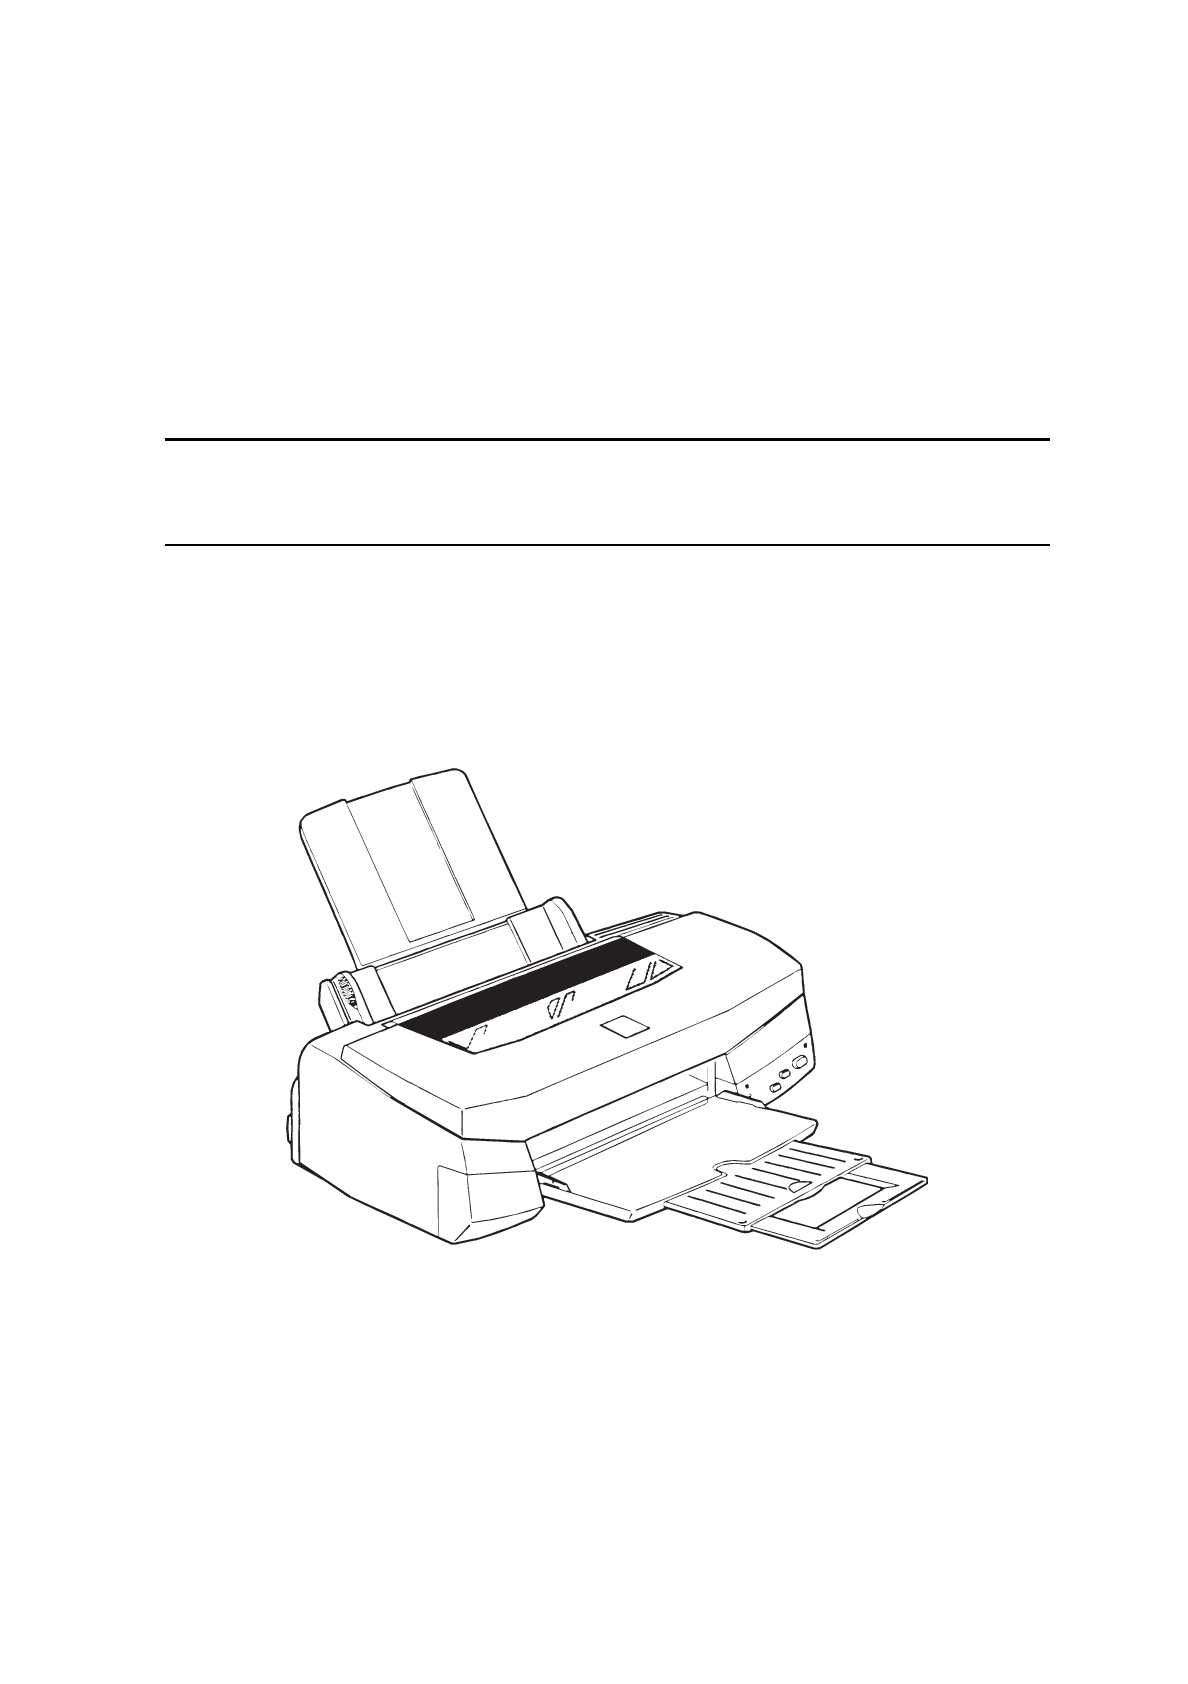 User manual Epson Stylus Photo P50 (151 pages)